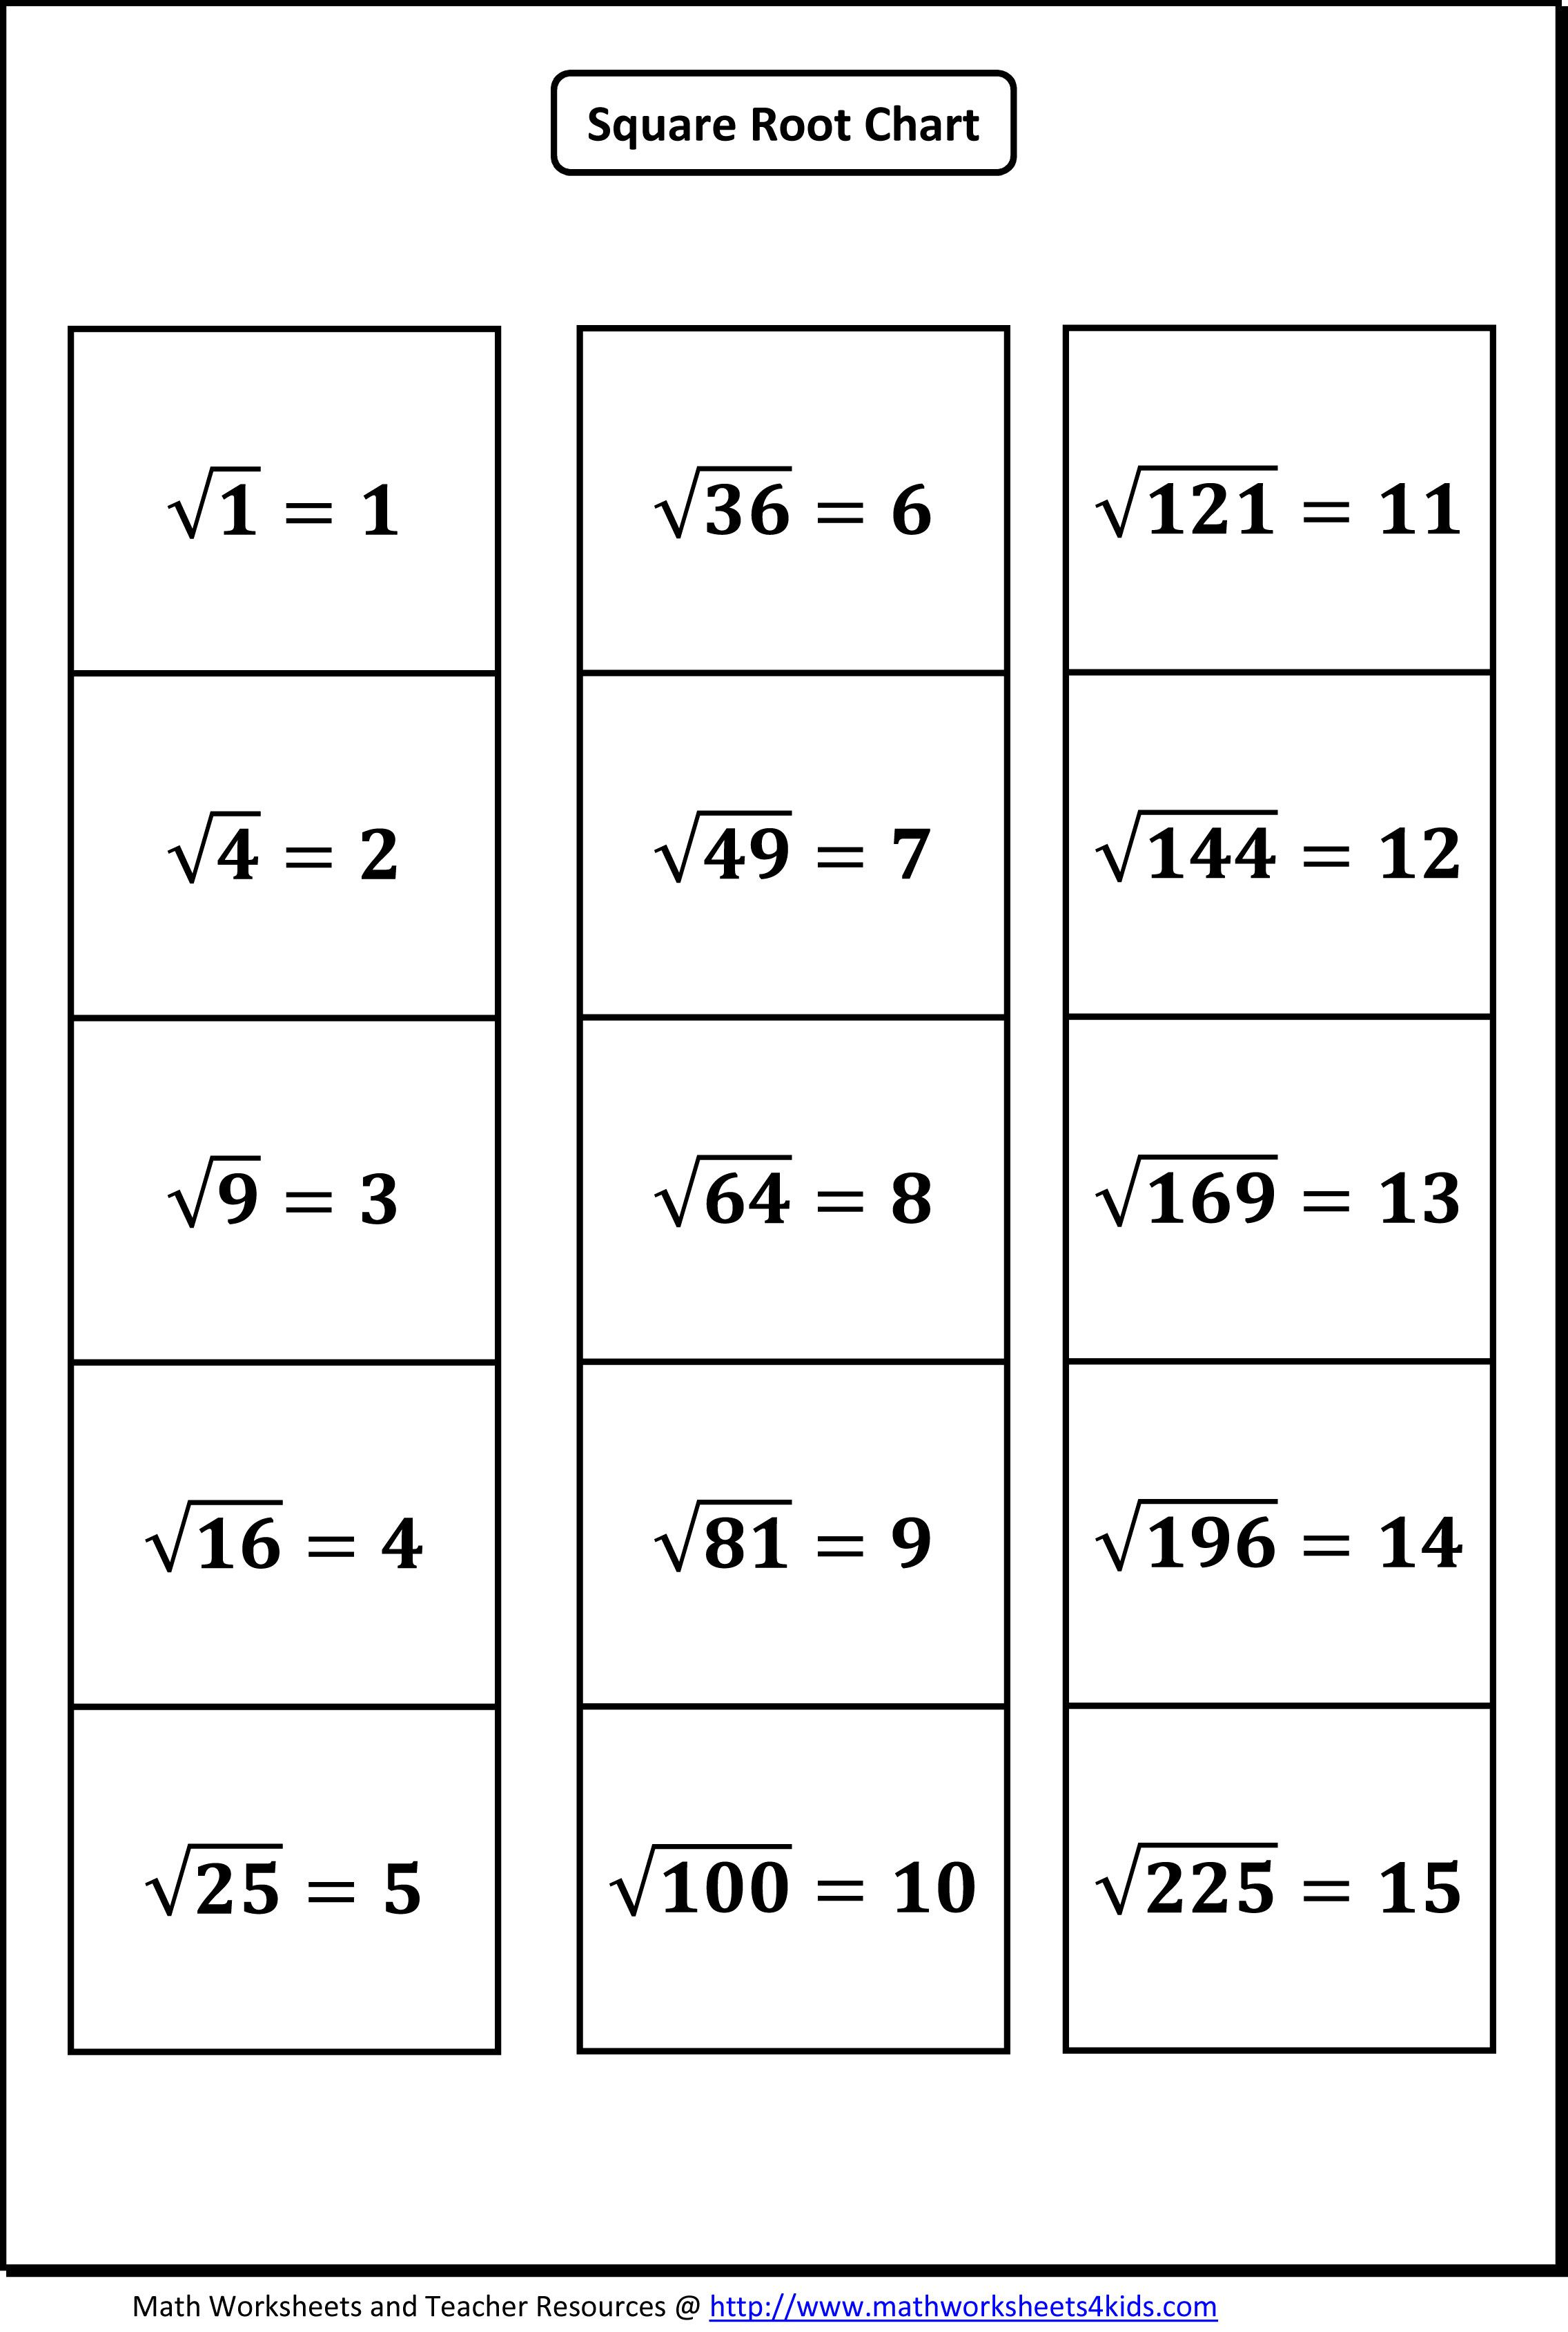 Printables Perfect Square Worksheets the top squares and tops on pinterest this page includes printable square root charts worksheets for perfect numbers fractions decimals simplifying surds more